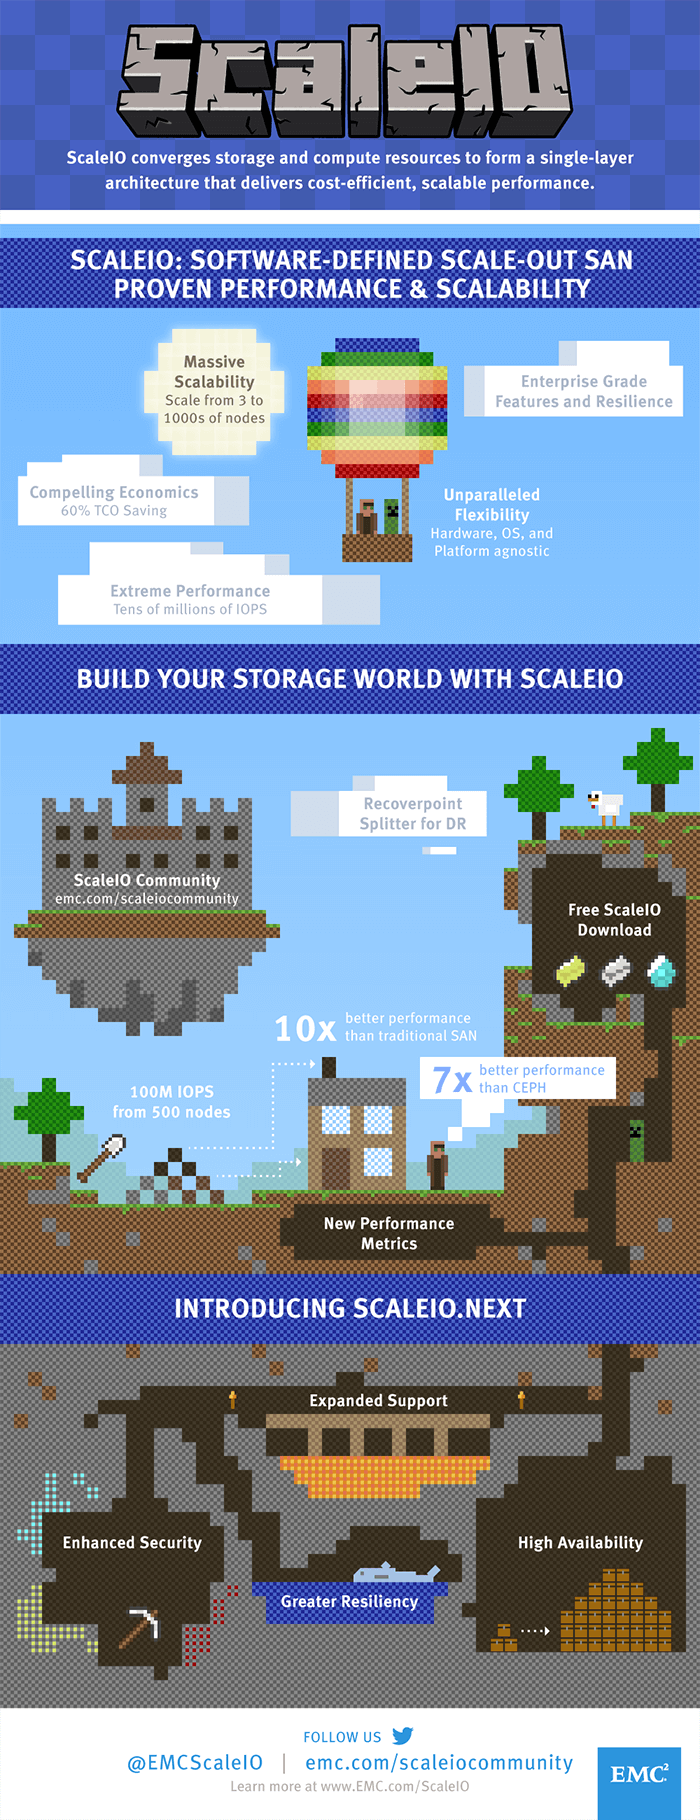 EMC ScaleIO Infographic: Discover how ScaleIO converges storage and compute resources to form a single-layer architecture that delivers cost-efficient, scalable performance.